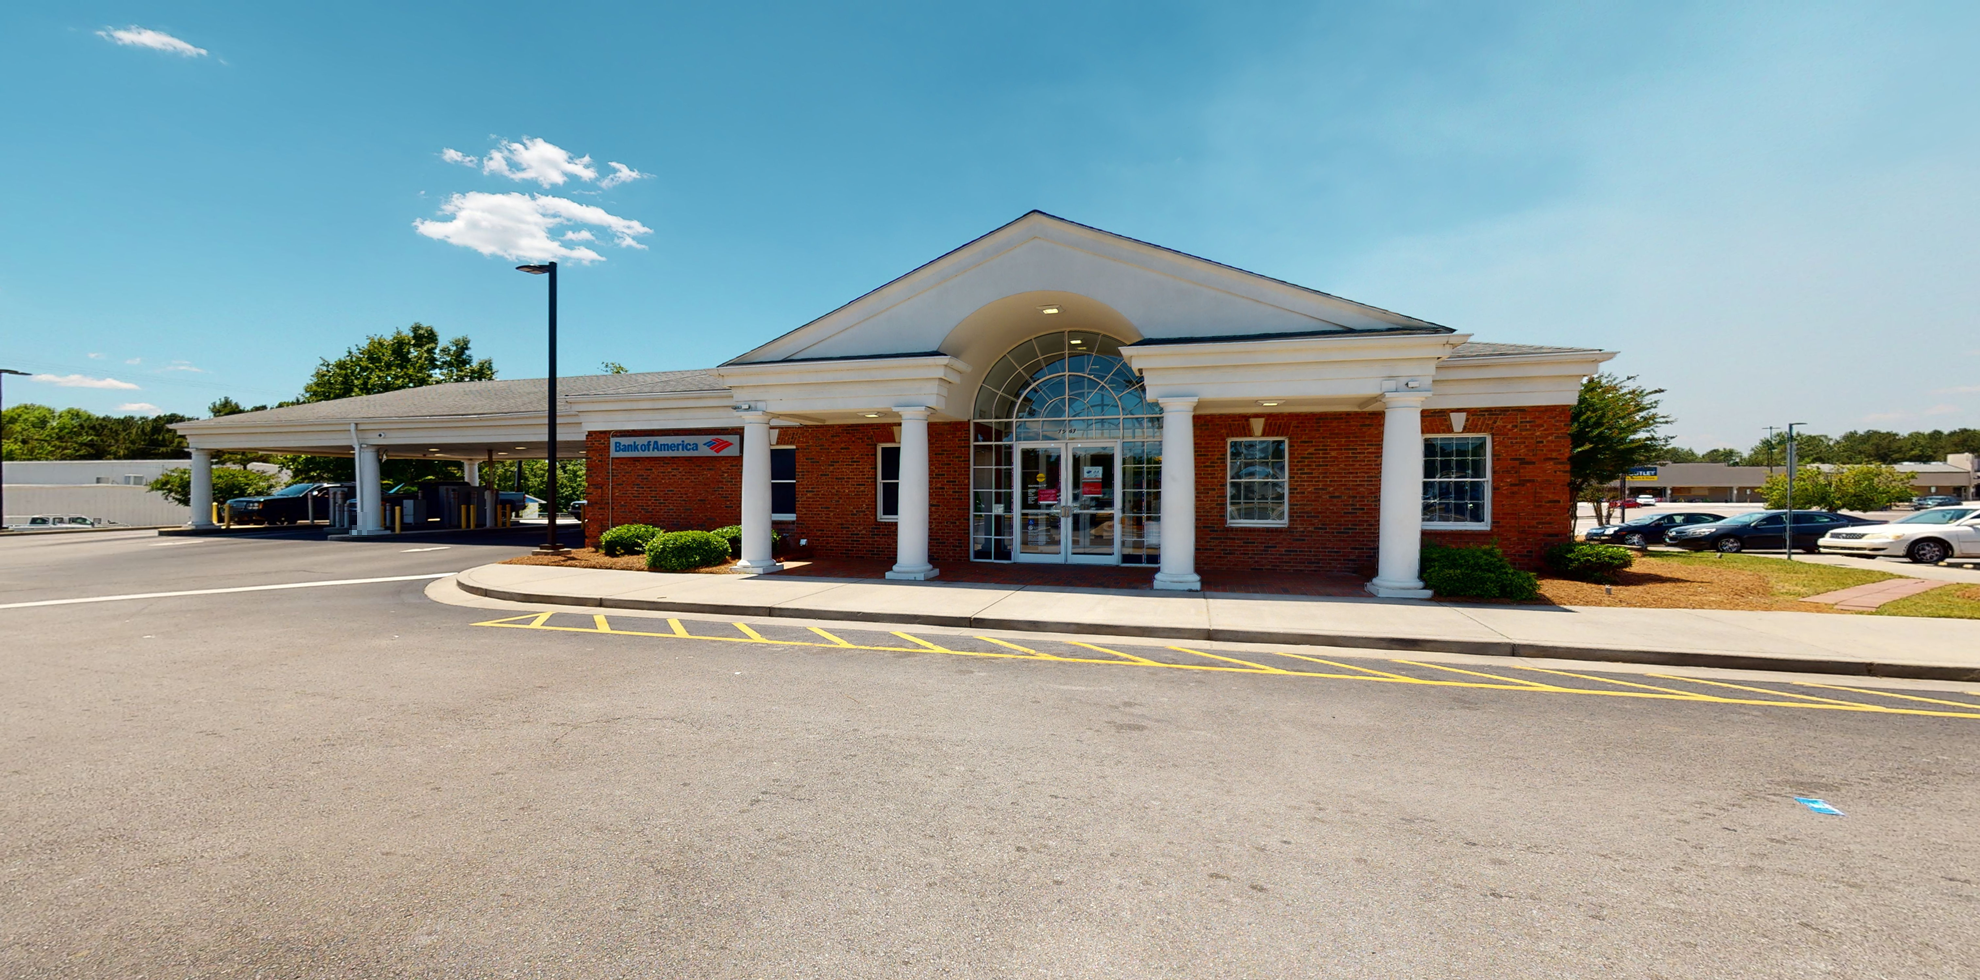 Bank of America financial center with drive-thru ATM and teller | 7547 Garners Ferry Rd, Columbia, SC 29209